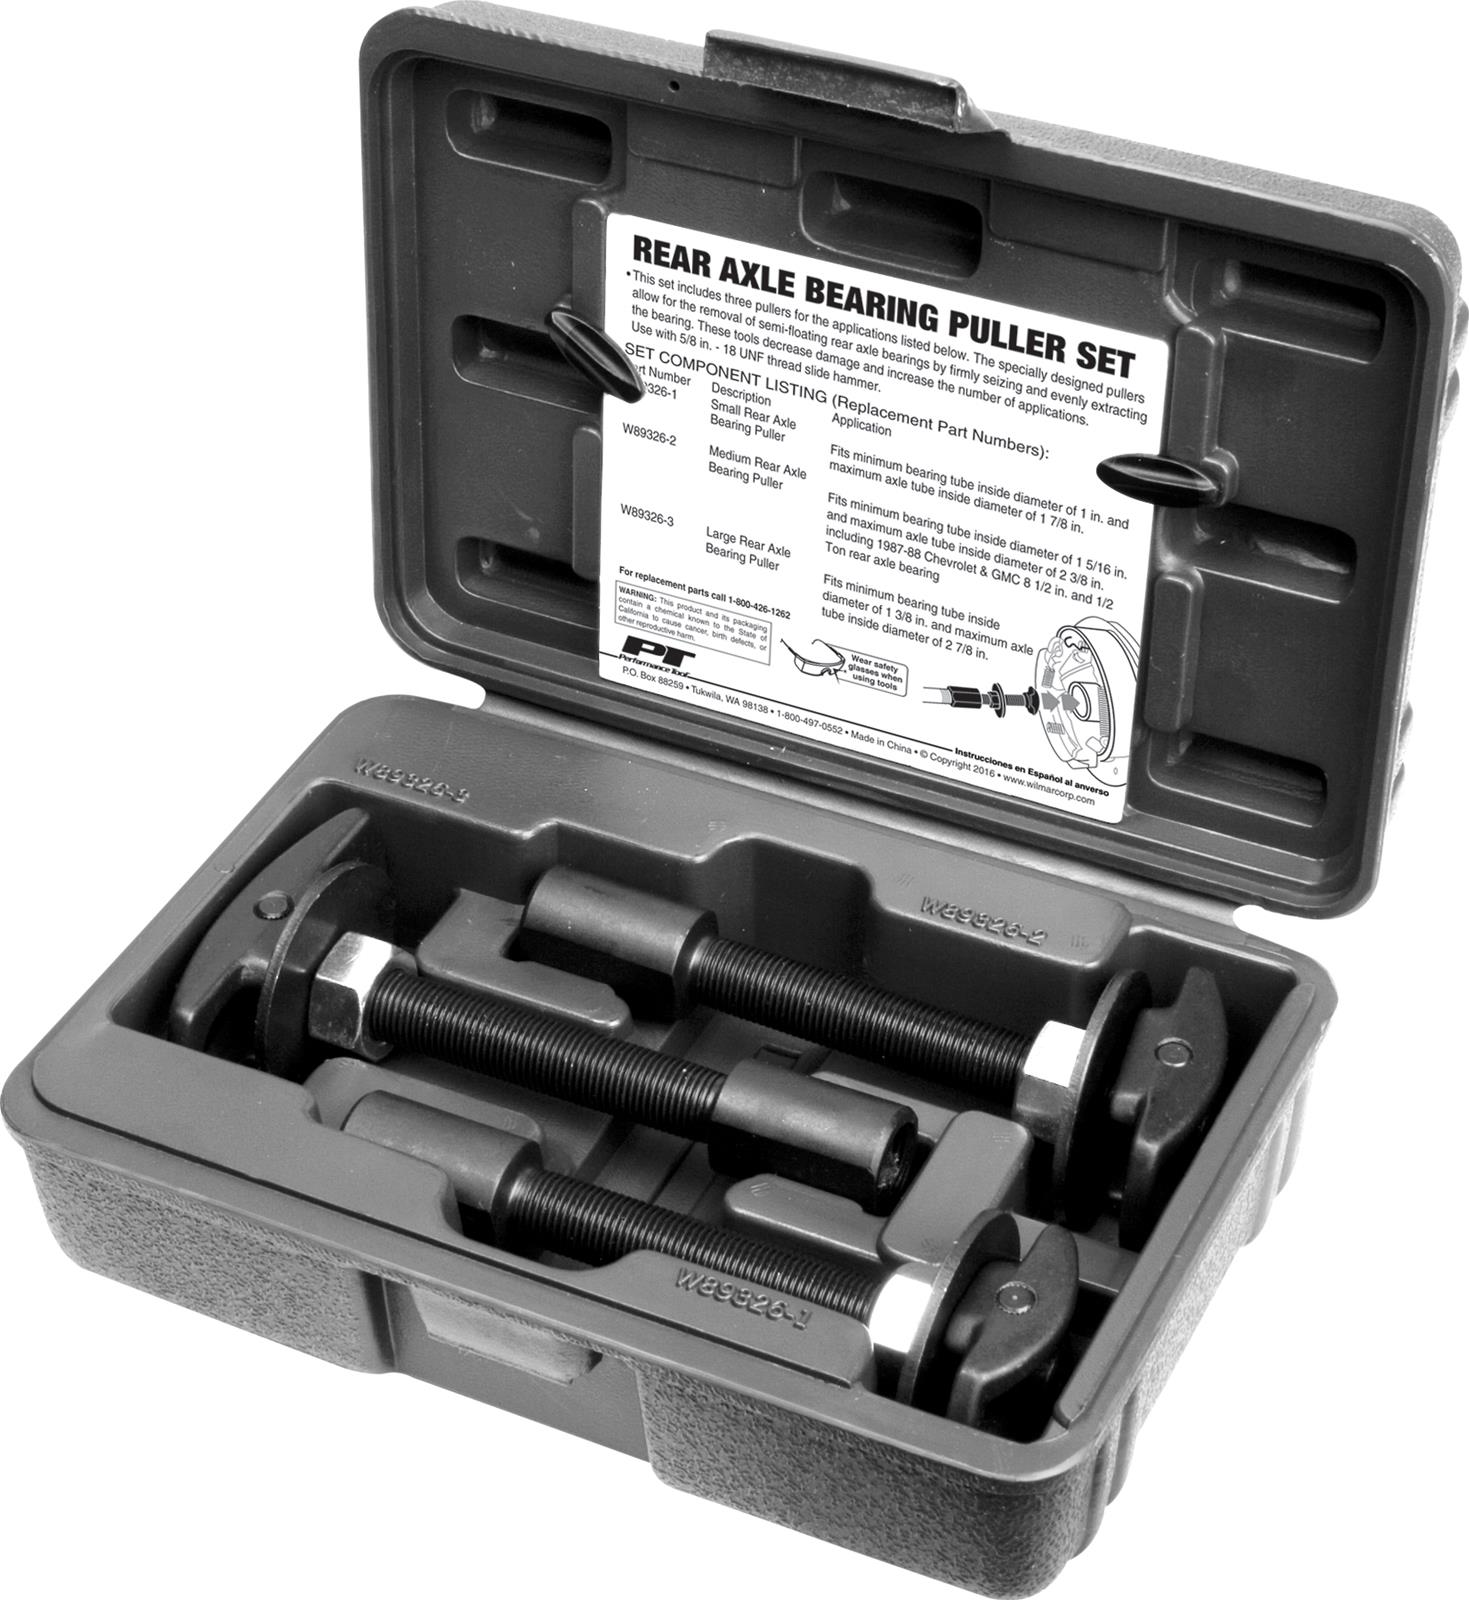 Performance Tool Rear Axle Bearing Puller Kits W89326